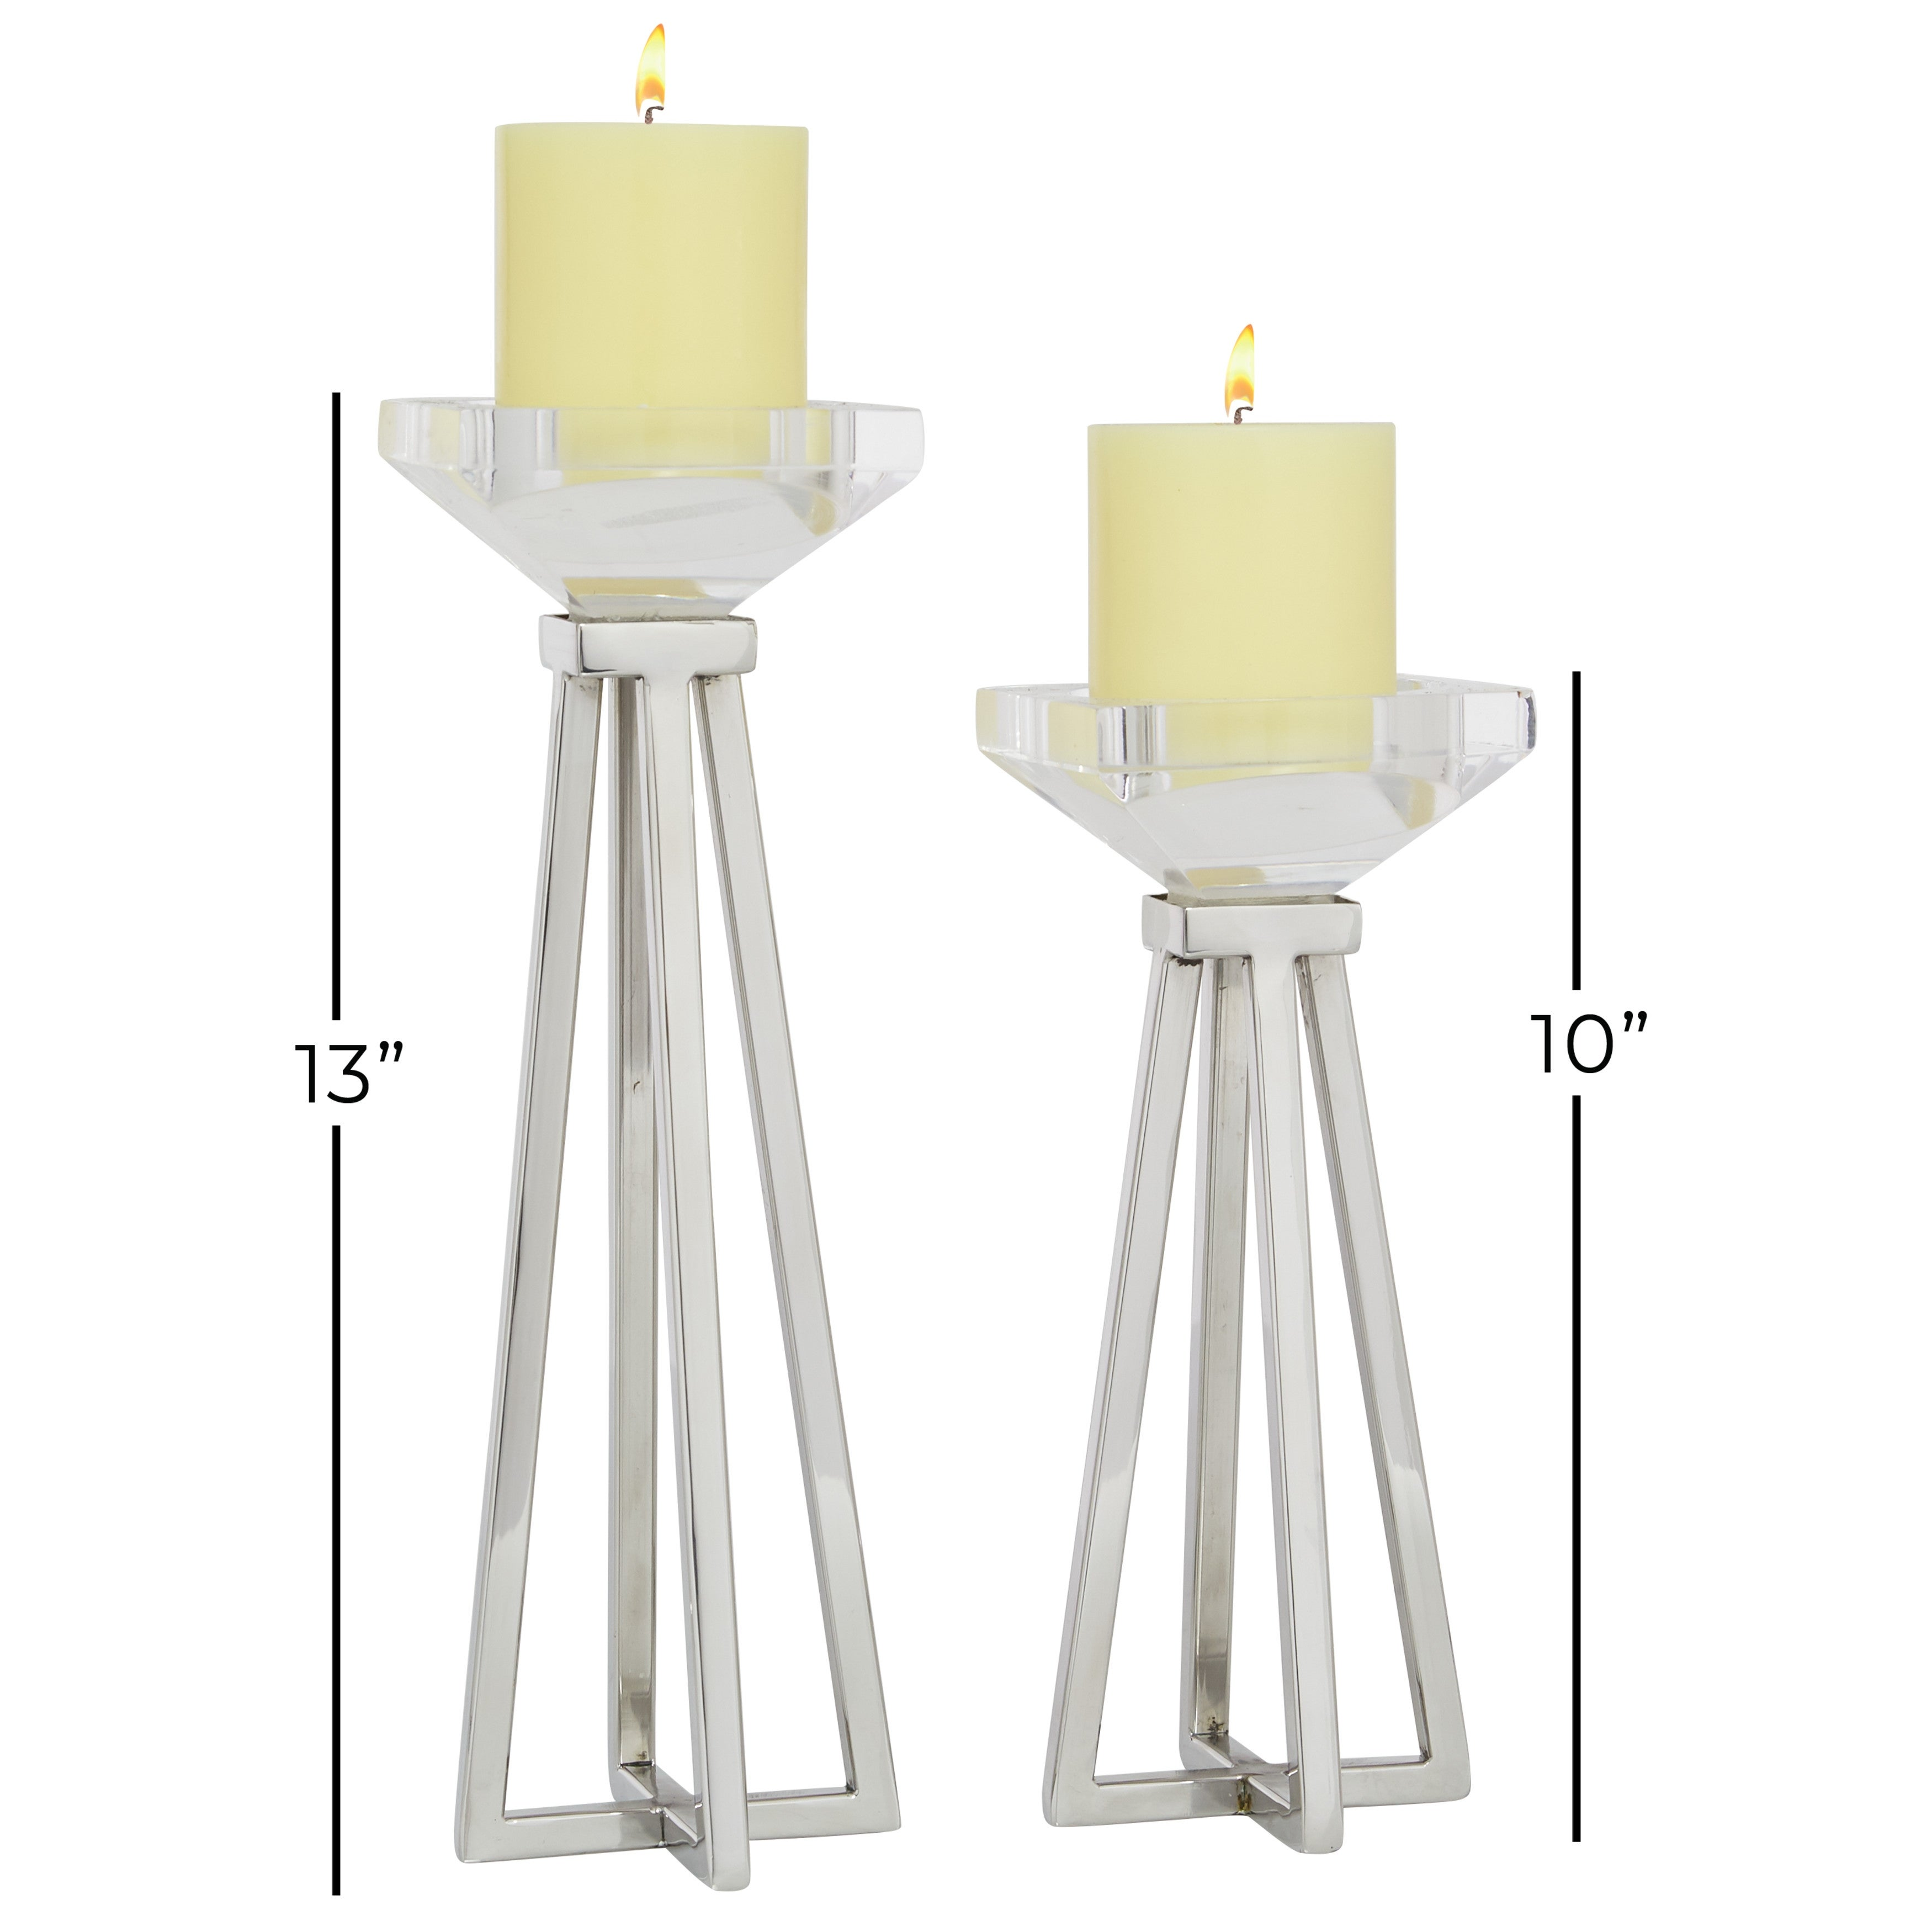 Candleholders Pillars Set Of 2 Metal And Acrylic Centerpieces For Home Silver 4 X 4 X 13 Overstock 32140851